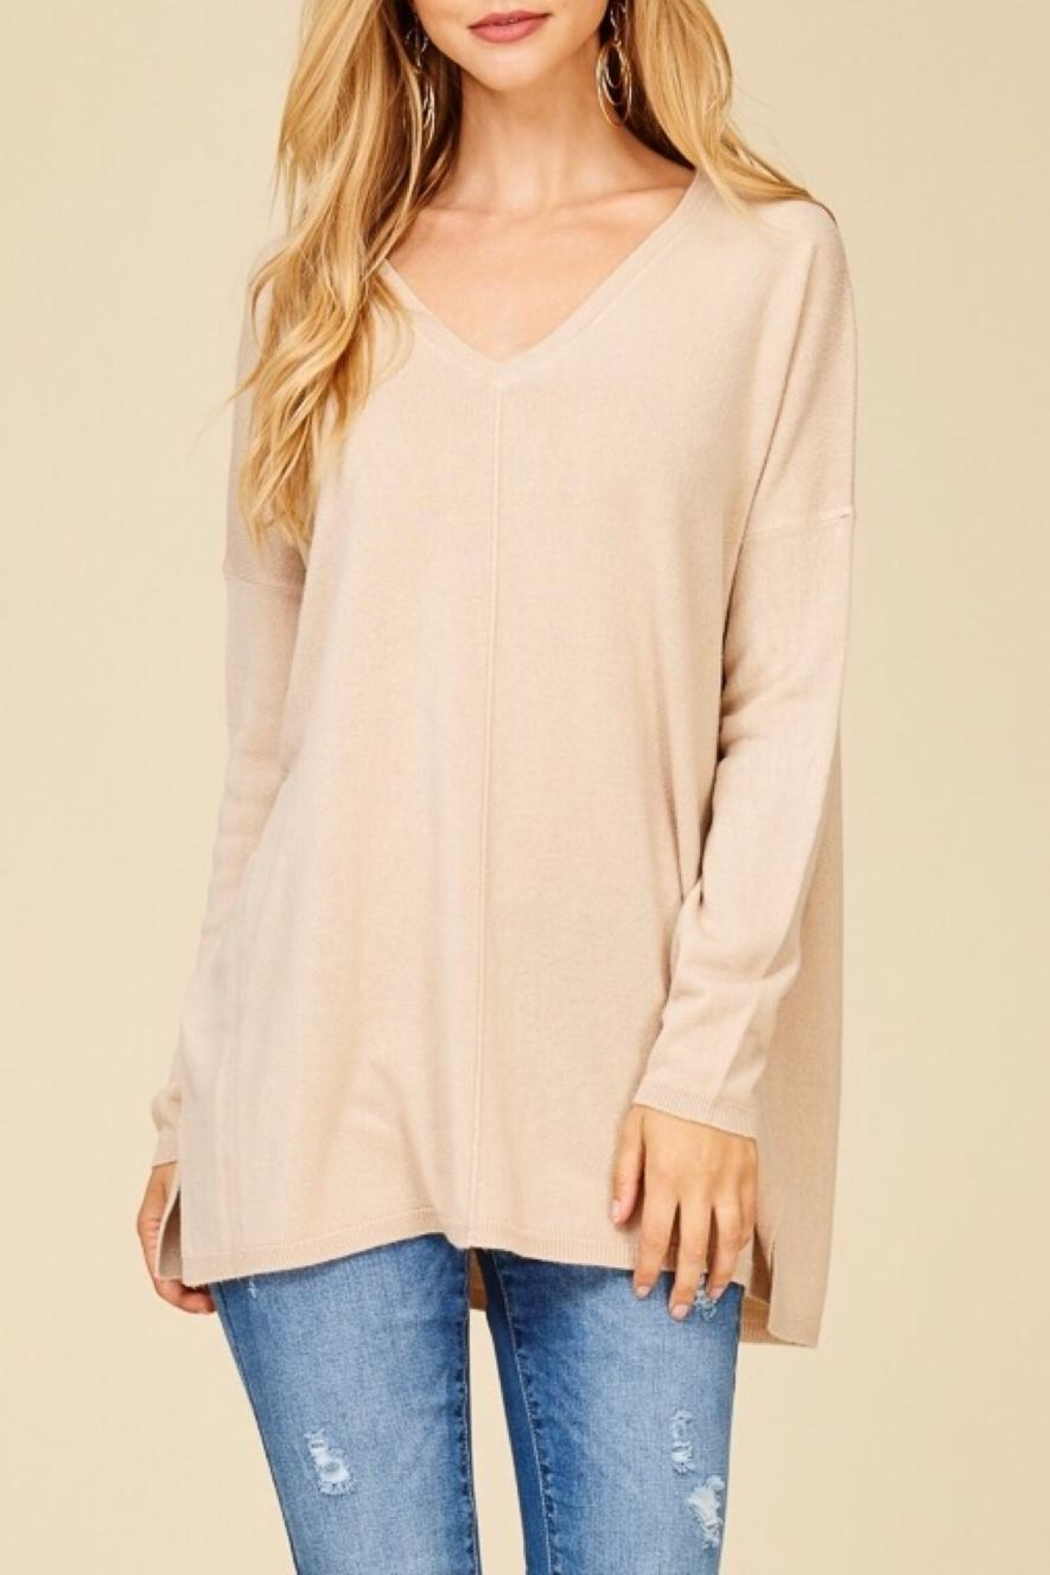 Staccato Taupe V-Neck Sweater - Main Image